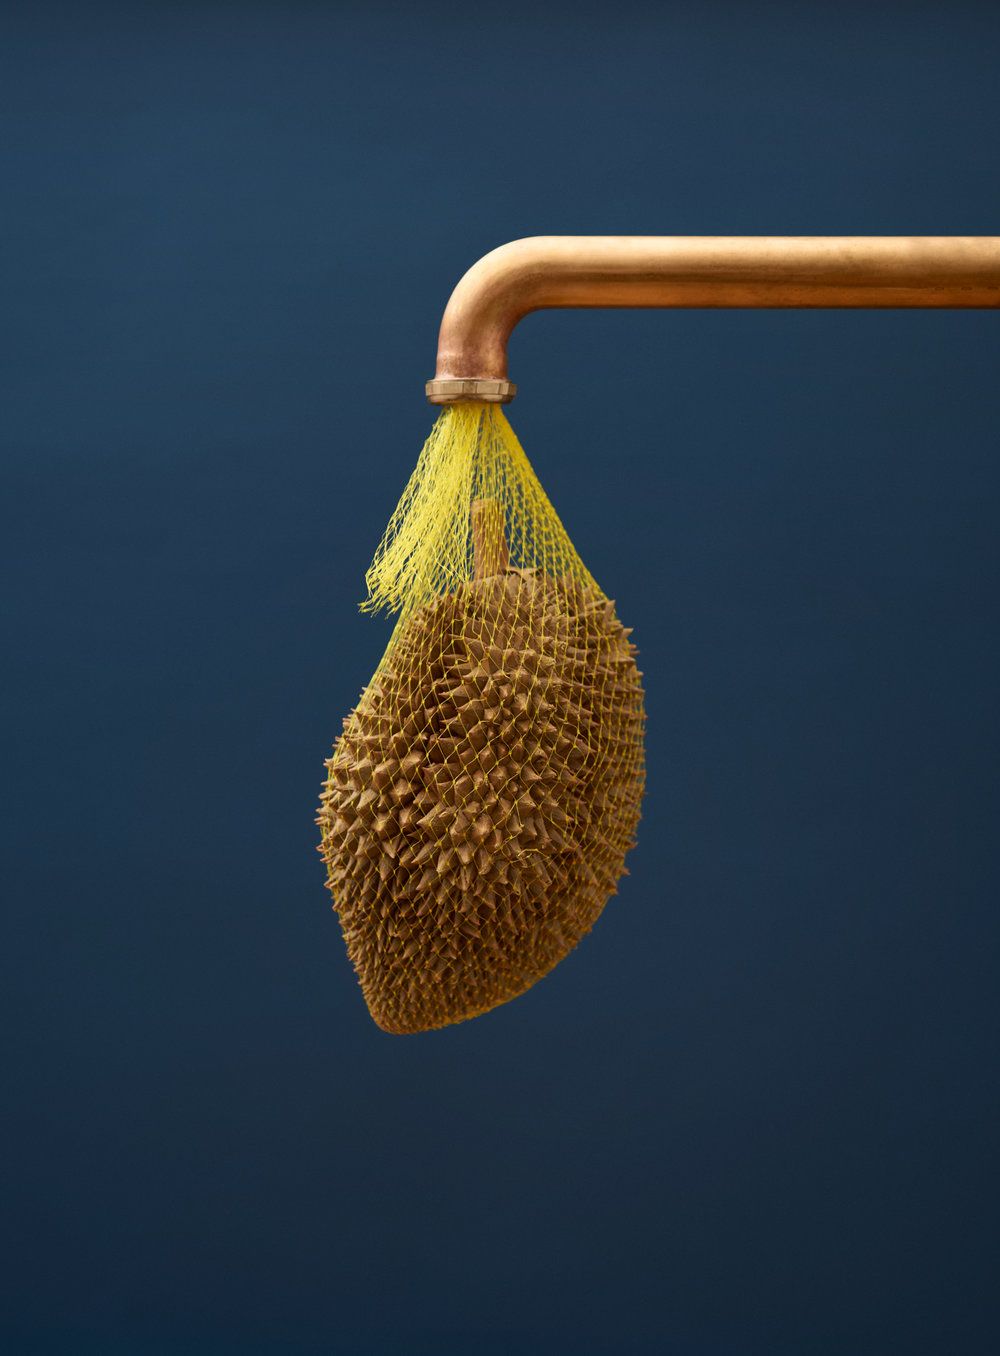 Copper-Pipe-Durian-Still-Life-Sentence.jpg